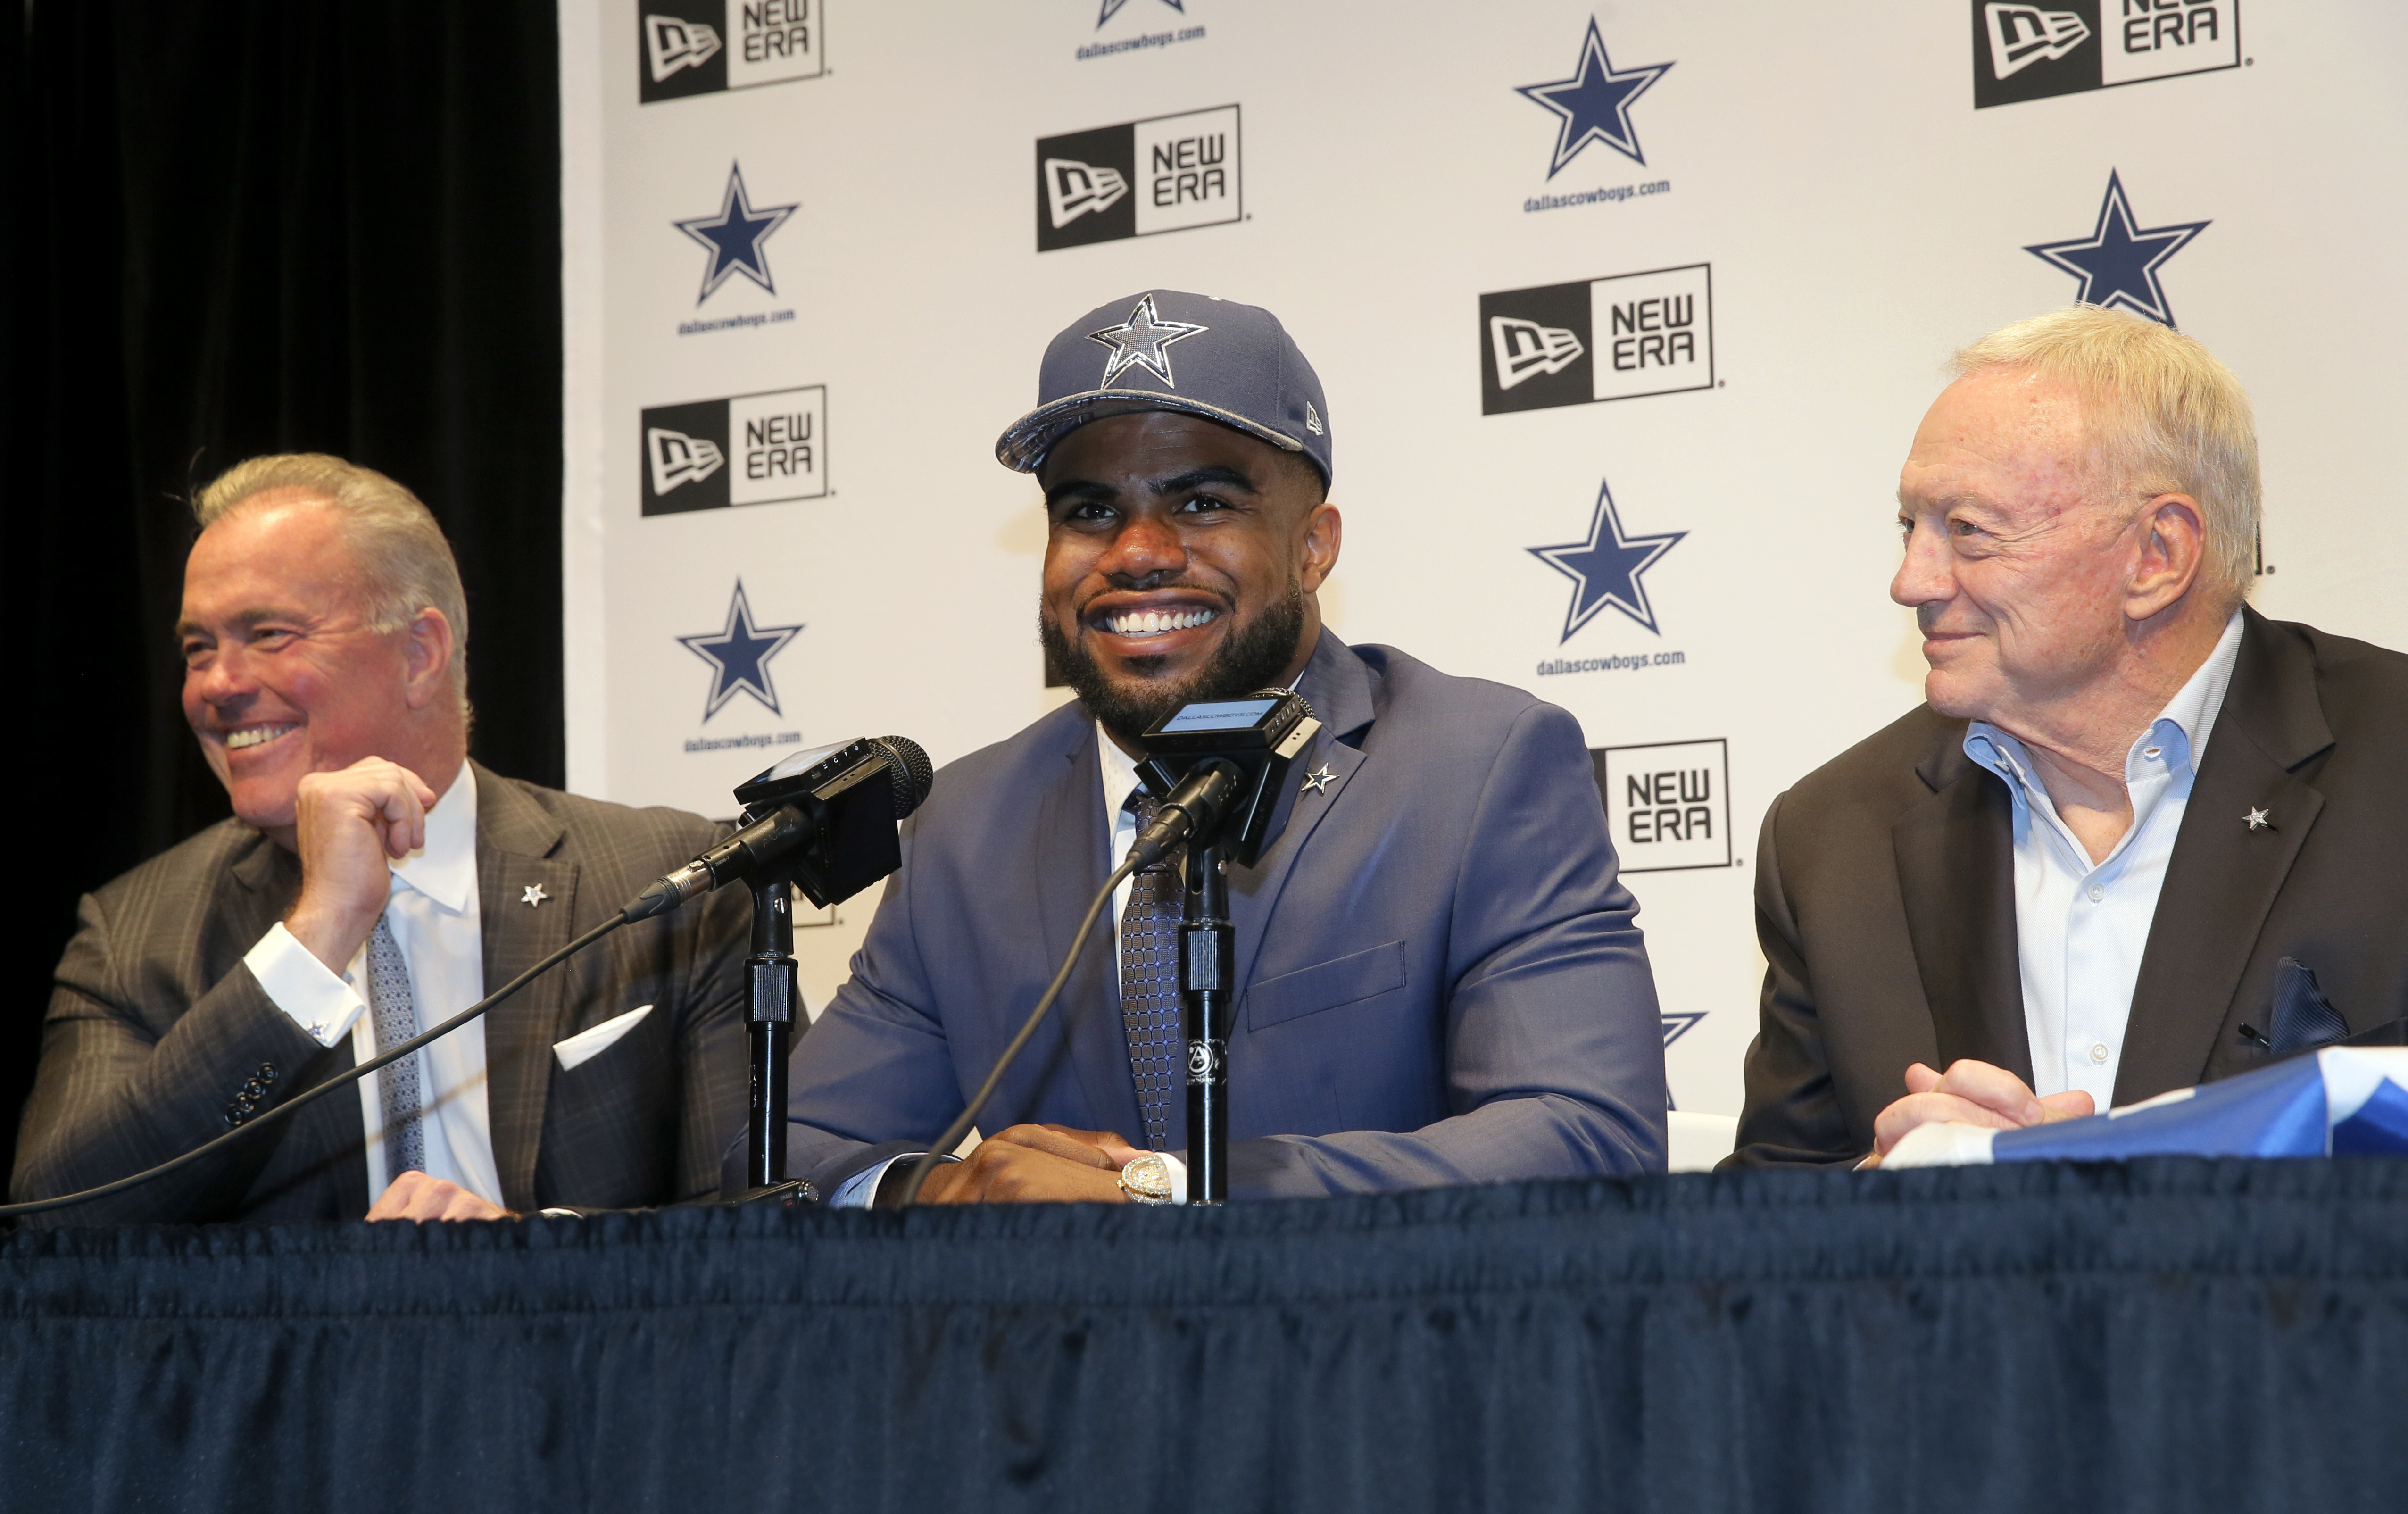 Dallas Cowboys Director of Player Personnel Stephen Jones, left, and team owner Jerry Jones, right, listen as first-round draft pick Ezekiel Elliott, center, answers questions at a news conference at the NFL football team's facility, Friday, April 29, 201